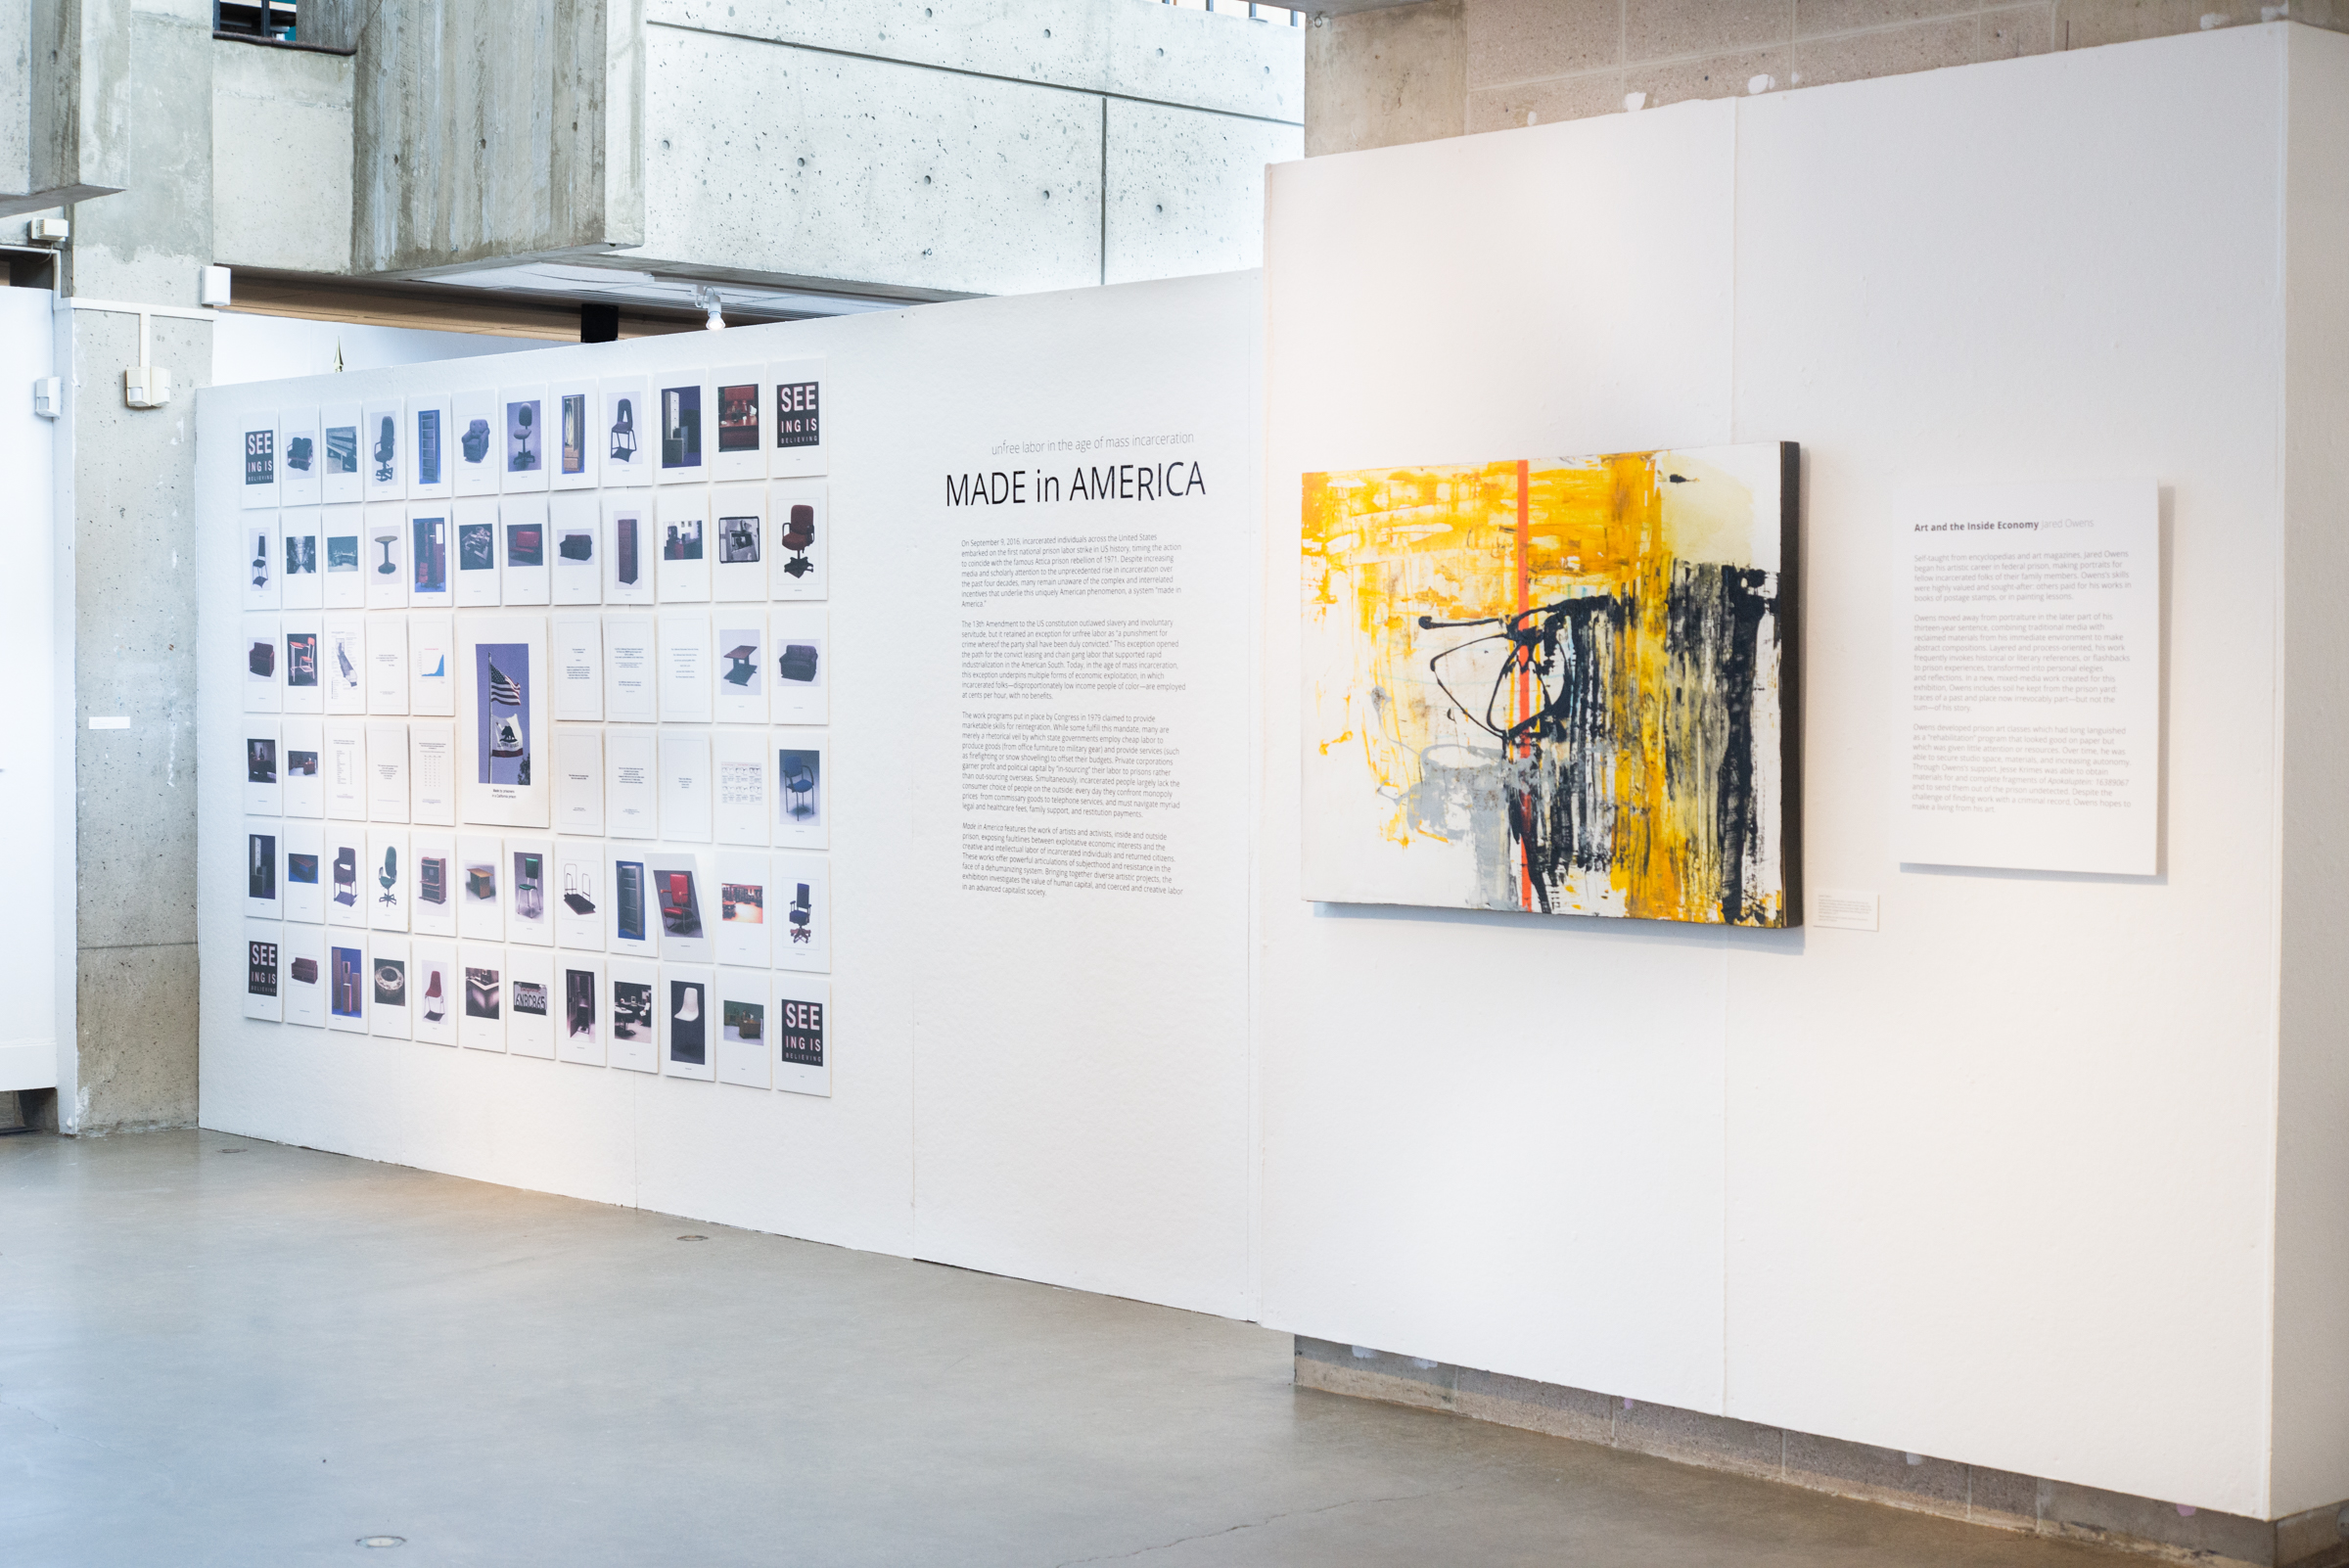 gallery wall with wall of images of products made by United States prisoners, the exhibition title and information, and a large abstract painting